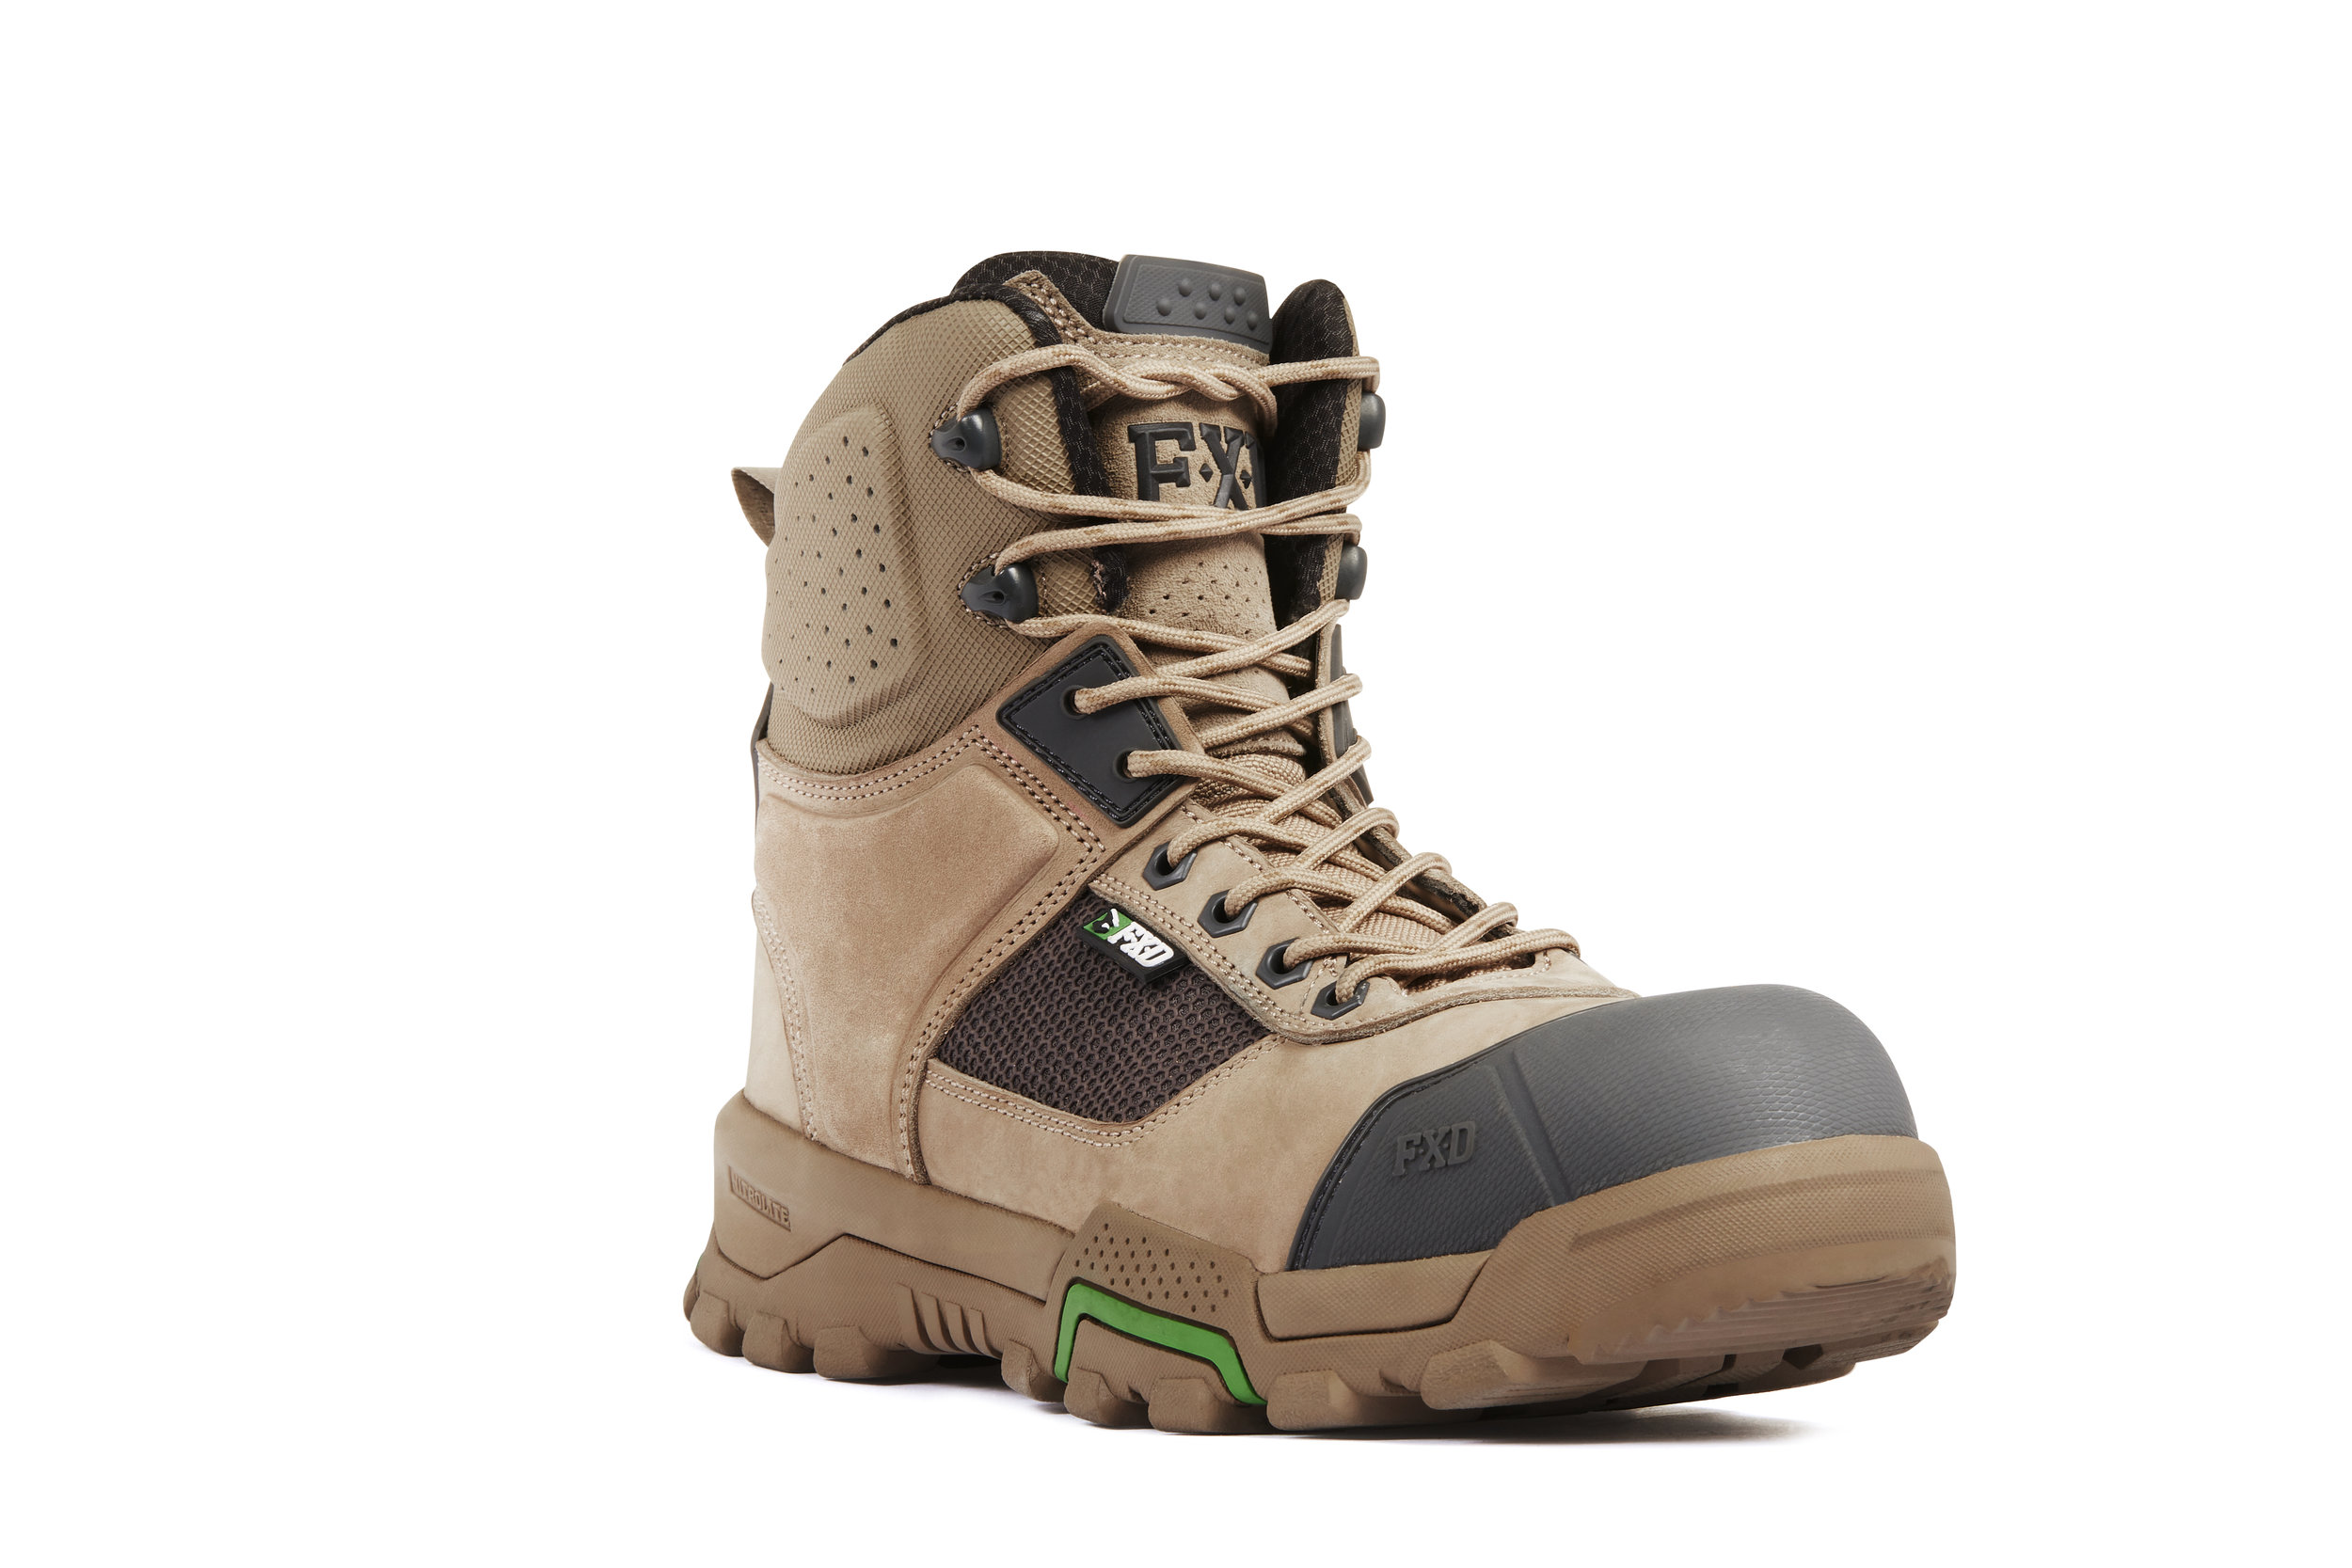 FXD WB-1 work boots (Stone front view)